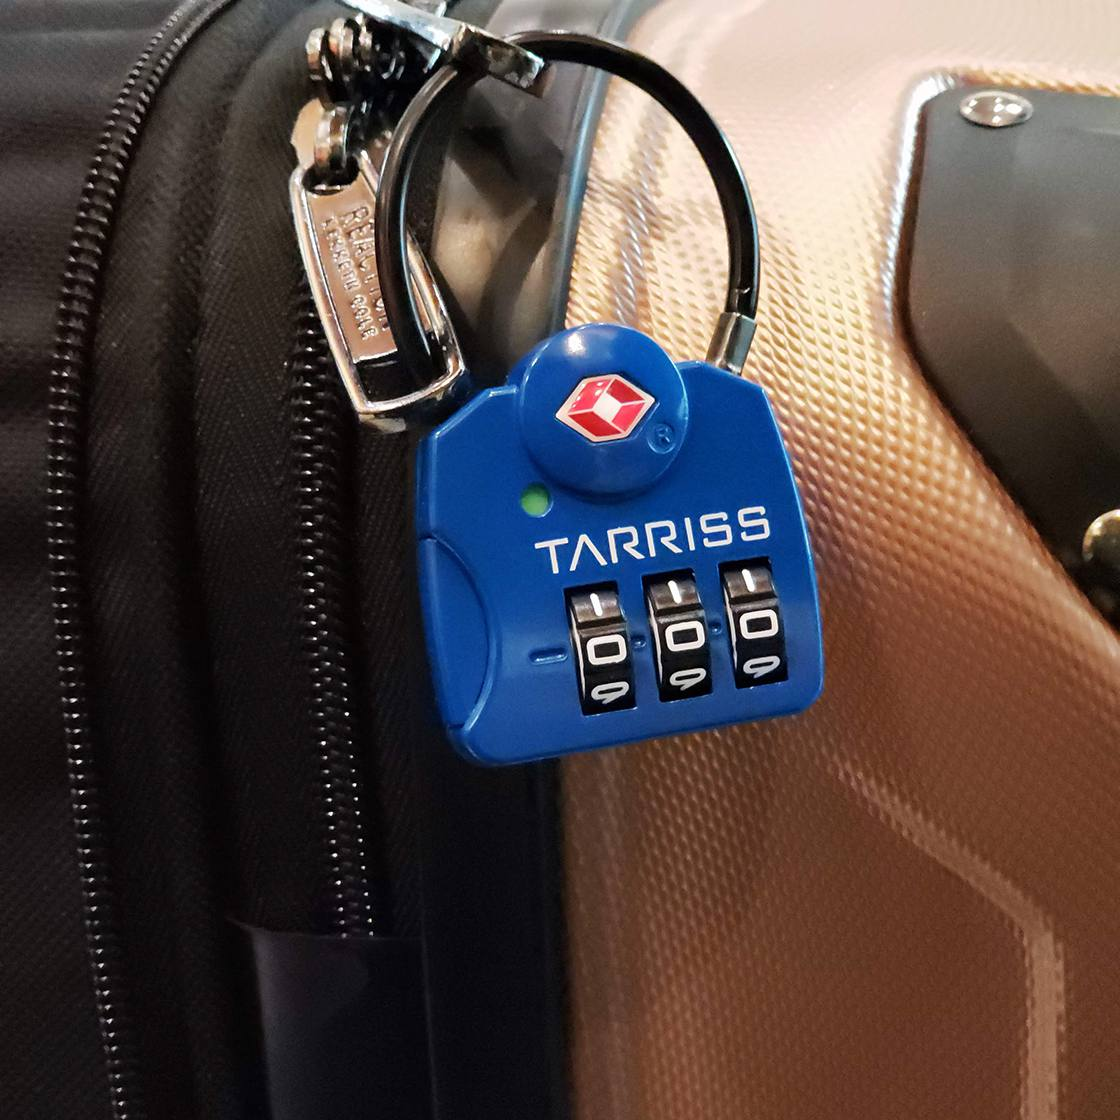 fed144a80998 The 8 Best TSA Approved Locks of 2019